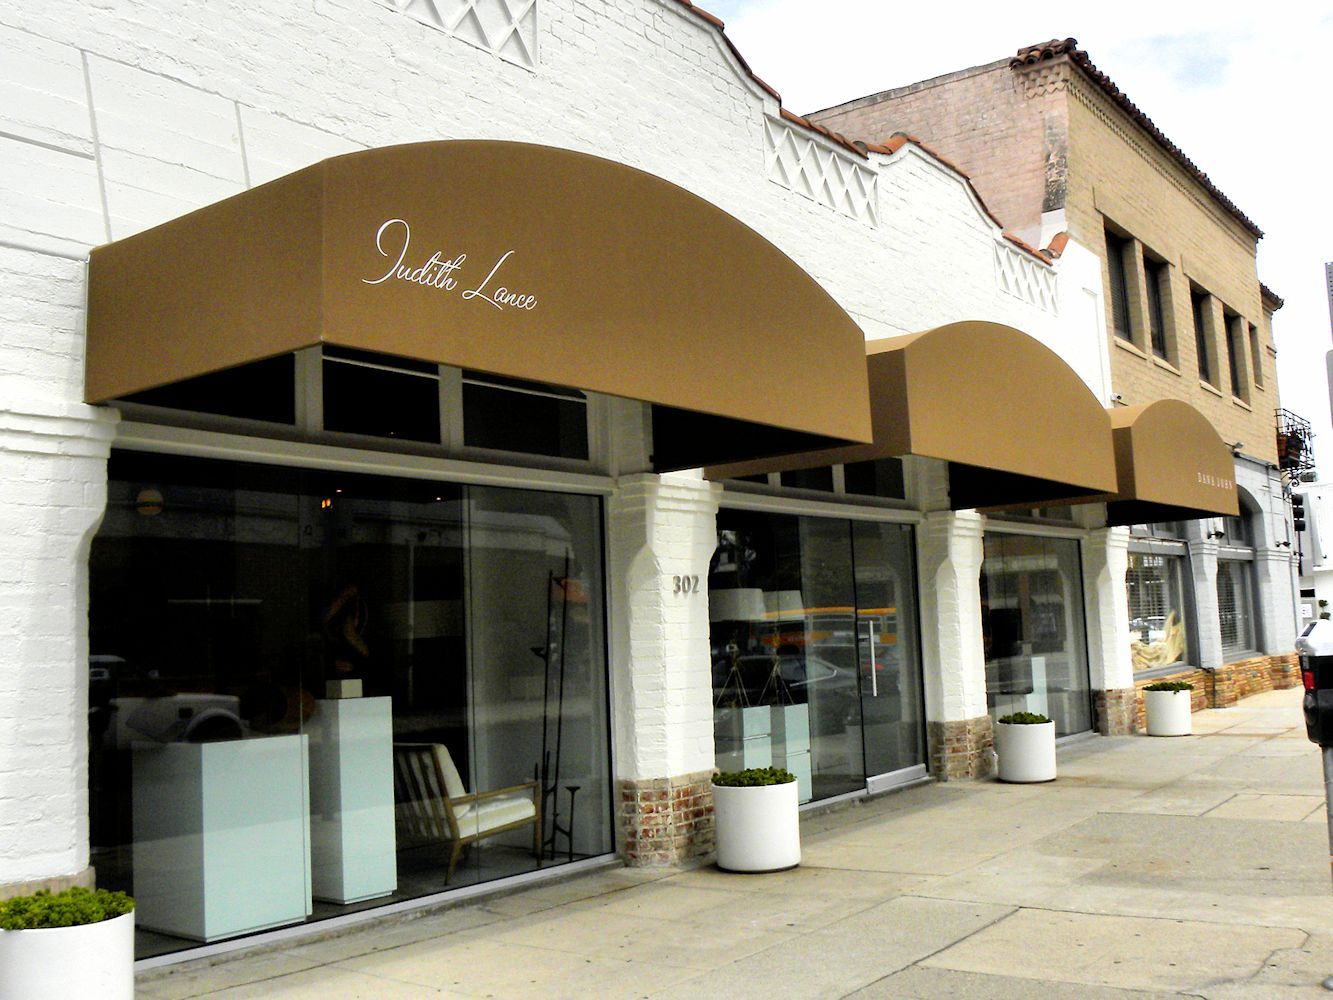 Commercial Awnings Canopies By Superior Awning Awning Canopy Awning Bar Design Restaurant